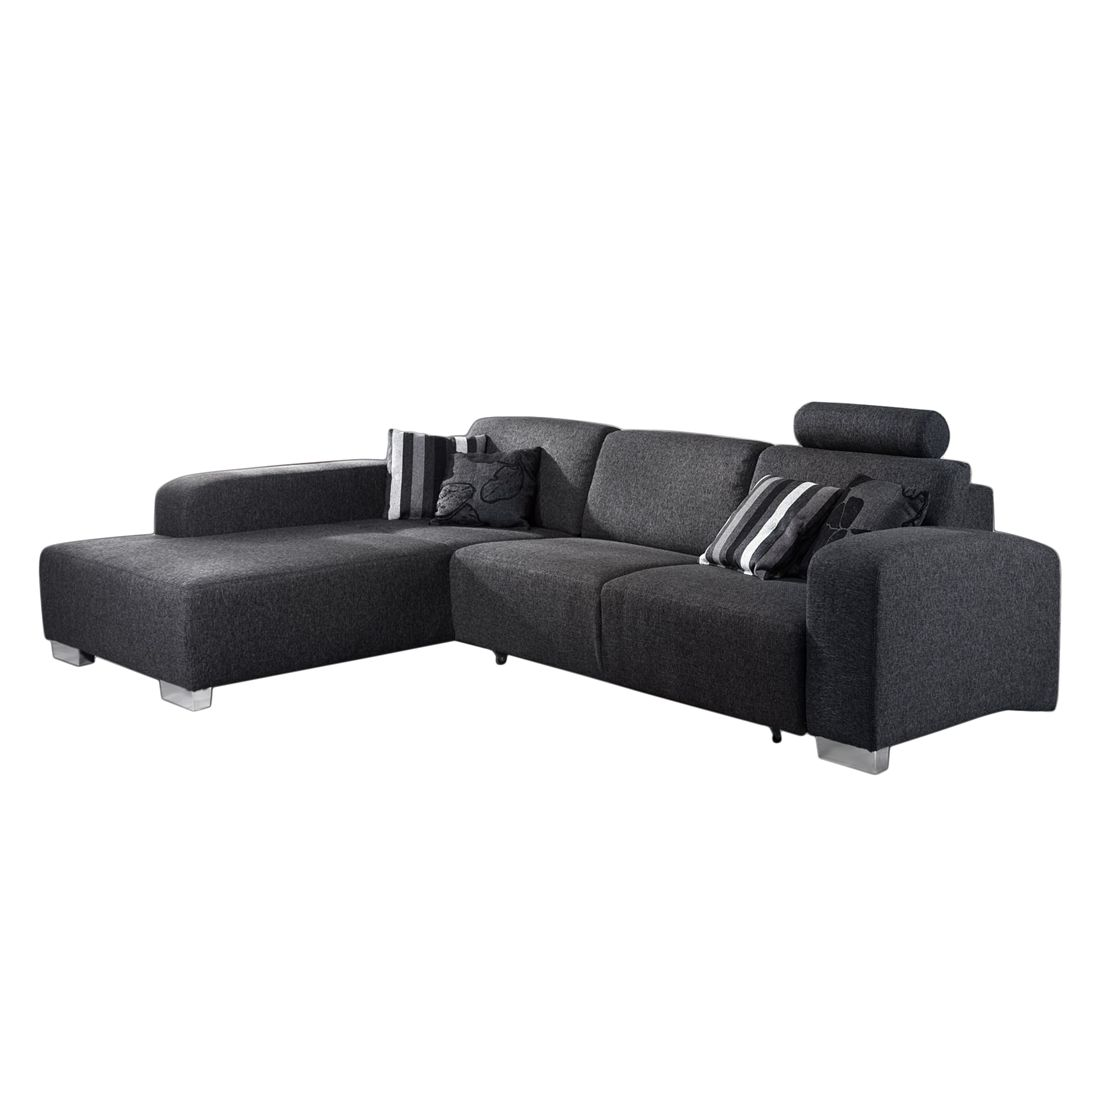 ecksofa chamb ry webstoff schwarz anthrazit longchair. Black Bedroom Furniture Sets. Home Design Ideas